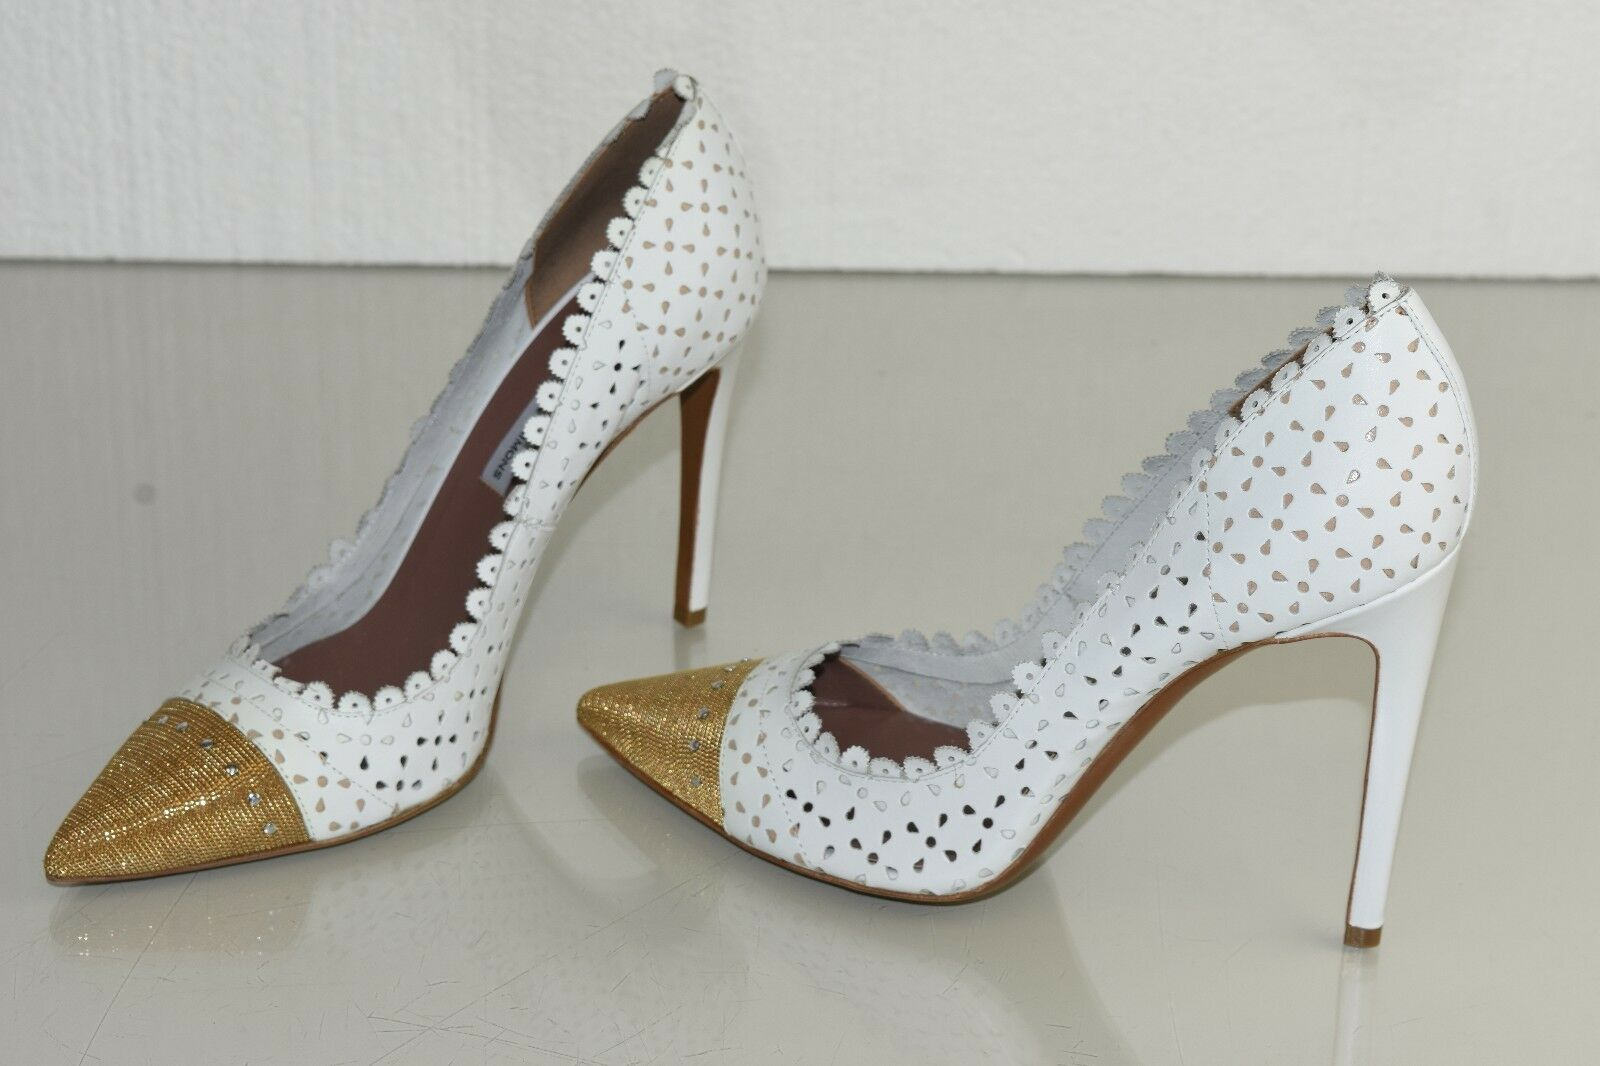 995 NEW Tabitha Simmons DALIA Chain Scalloped Leather Perforated Pumps White 40